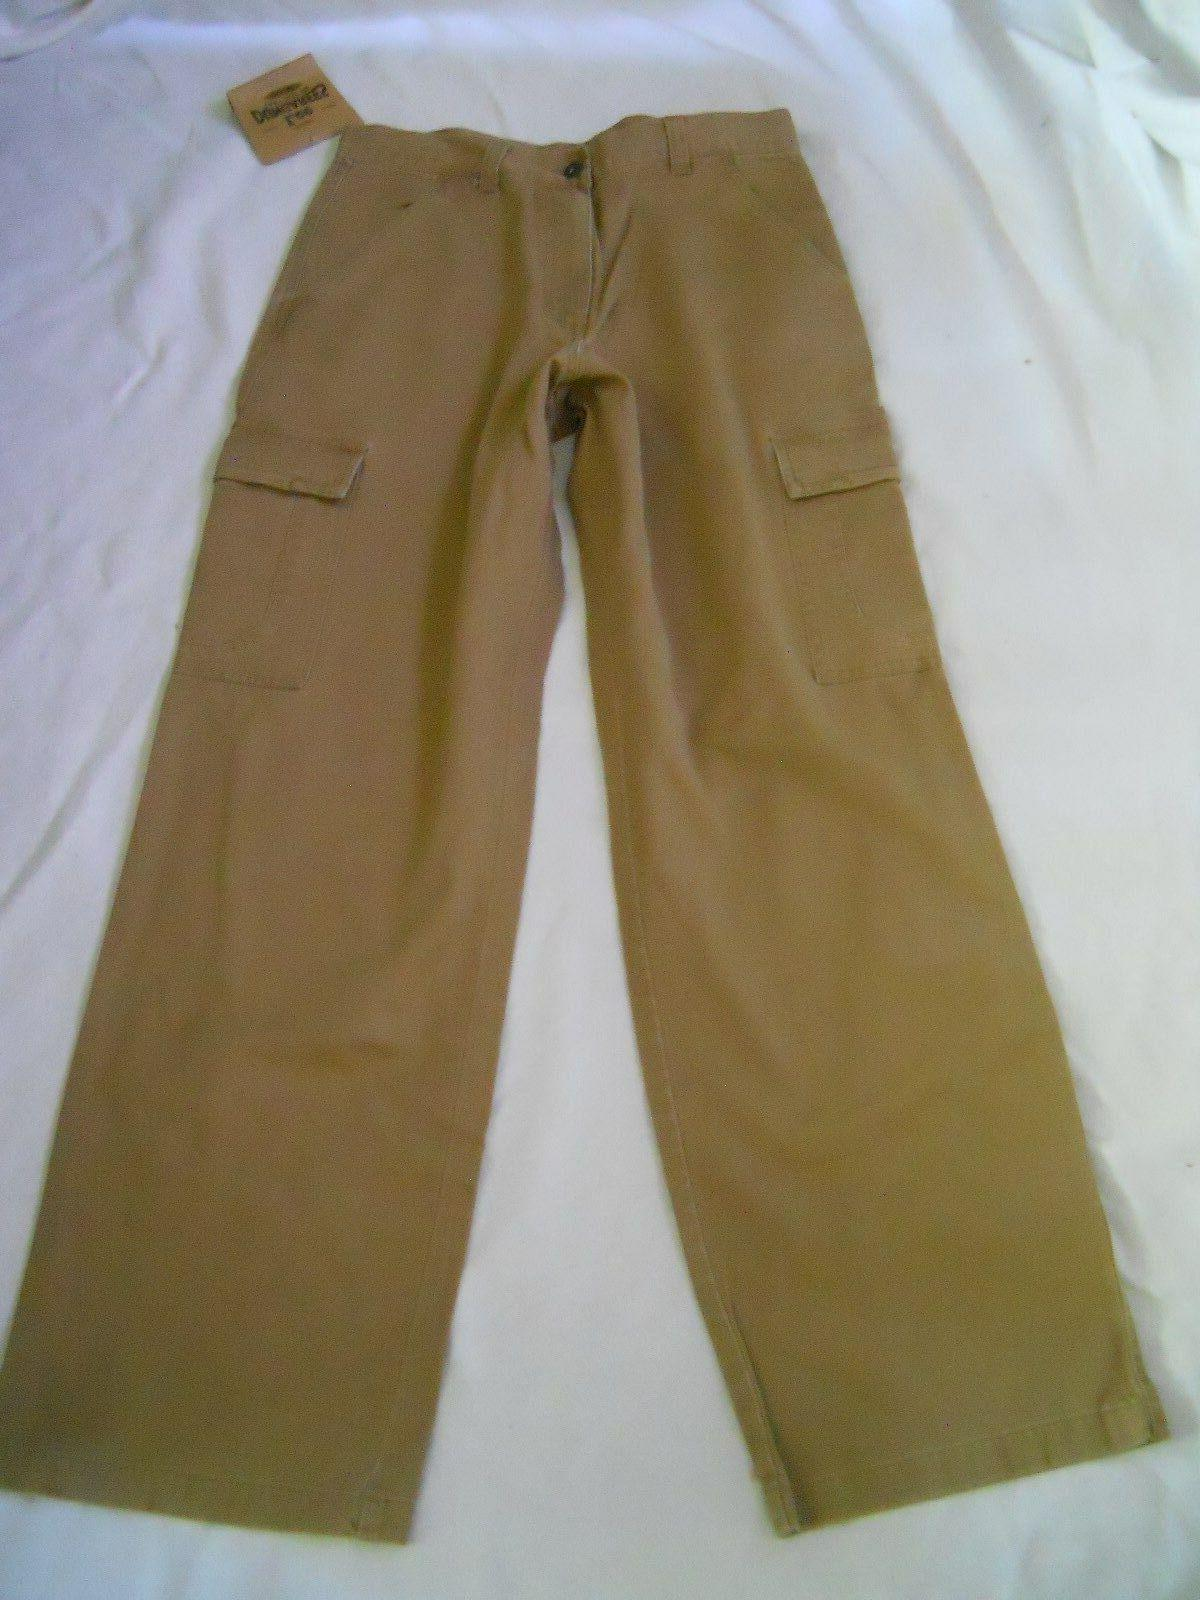 Lee Dungarees Cargo Pants Size 32 x 33 Pockets Flat Front Br